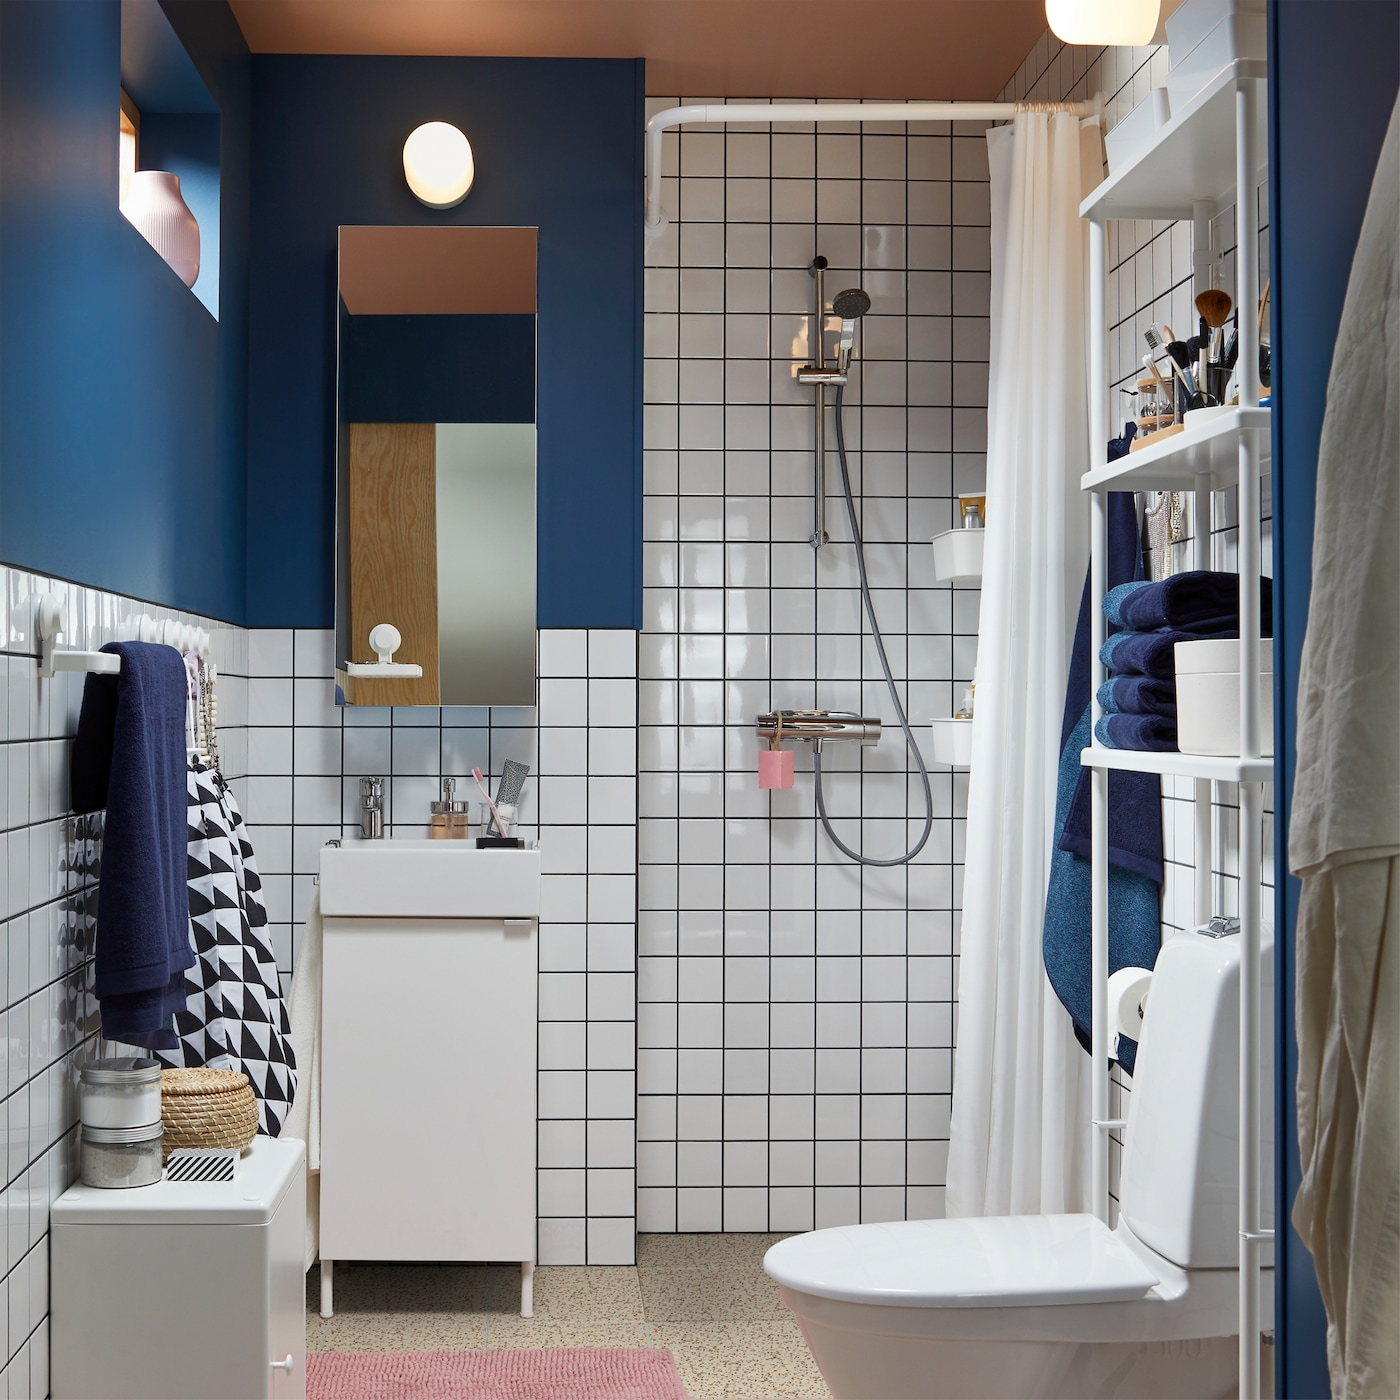 Bathroom Design Gallery UAE - IKEA